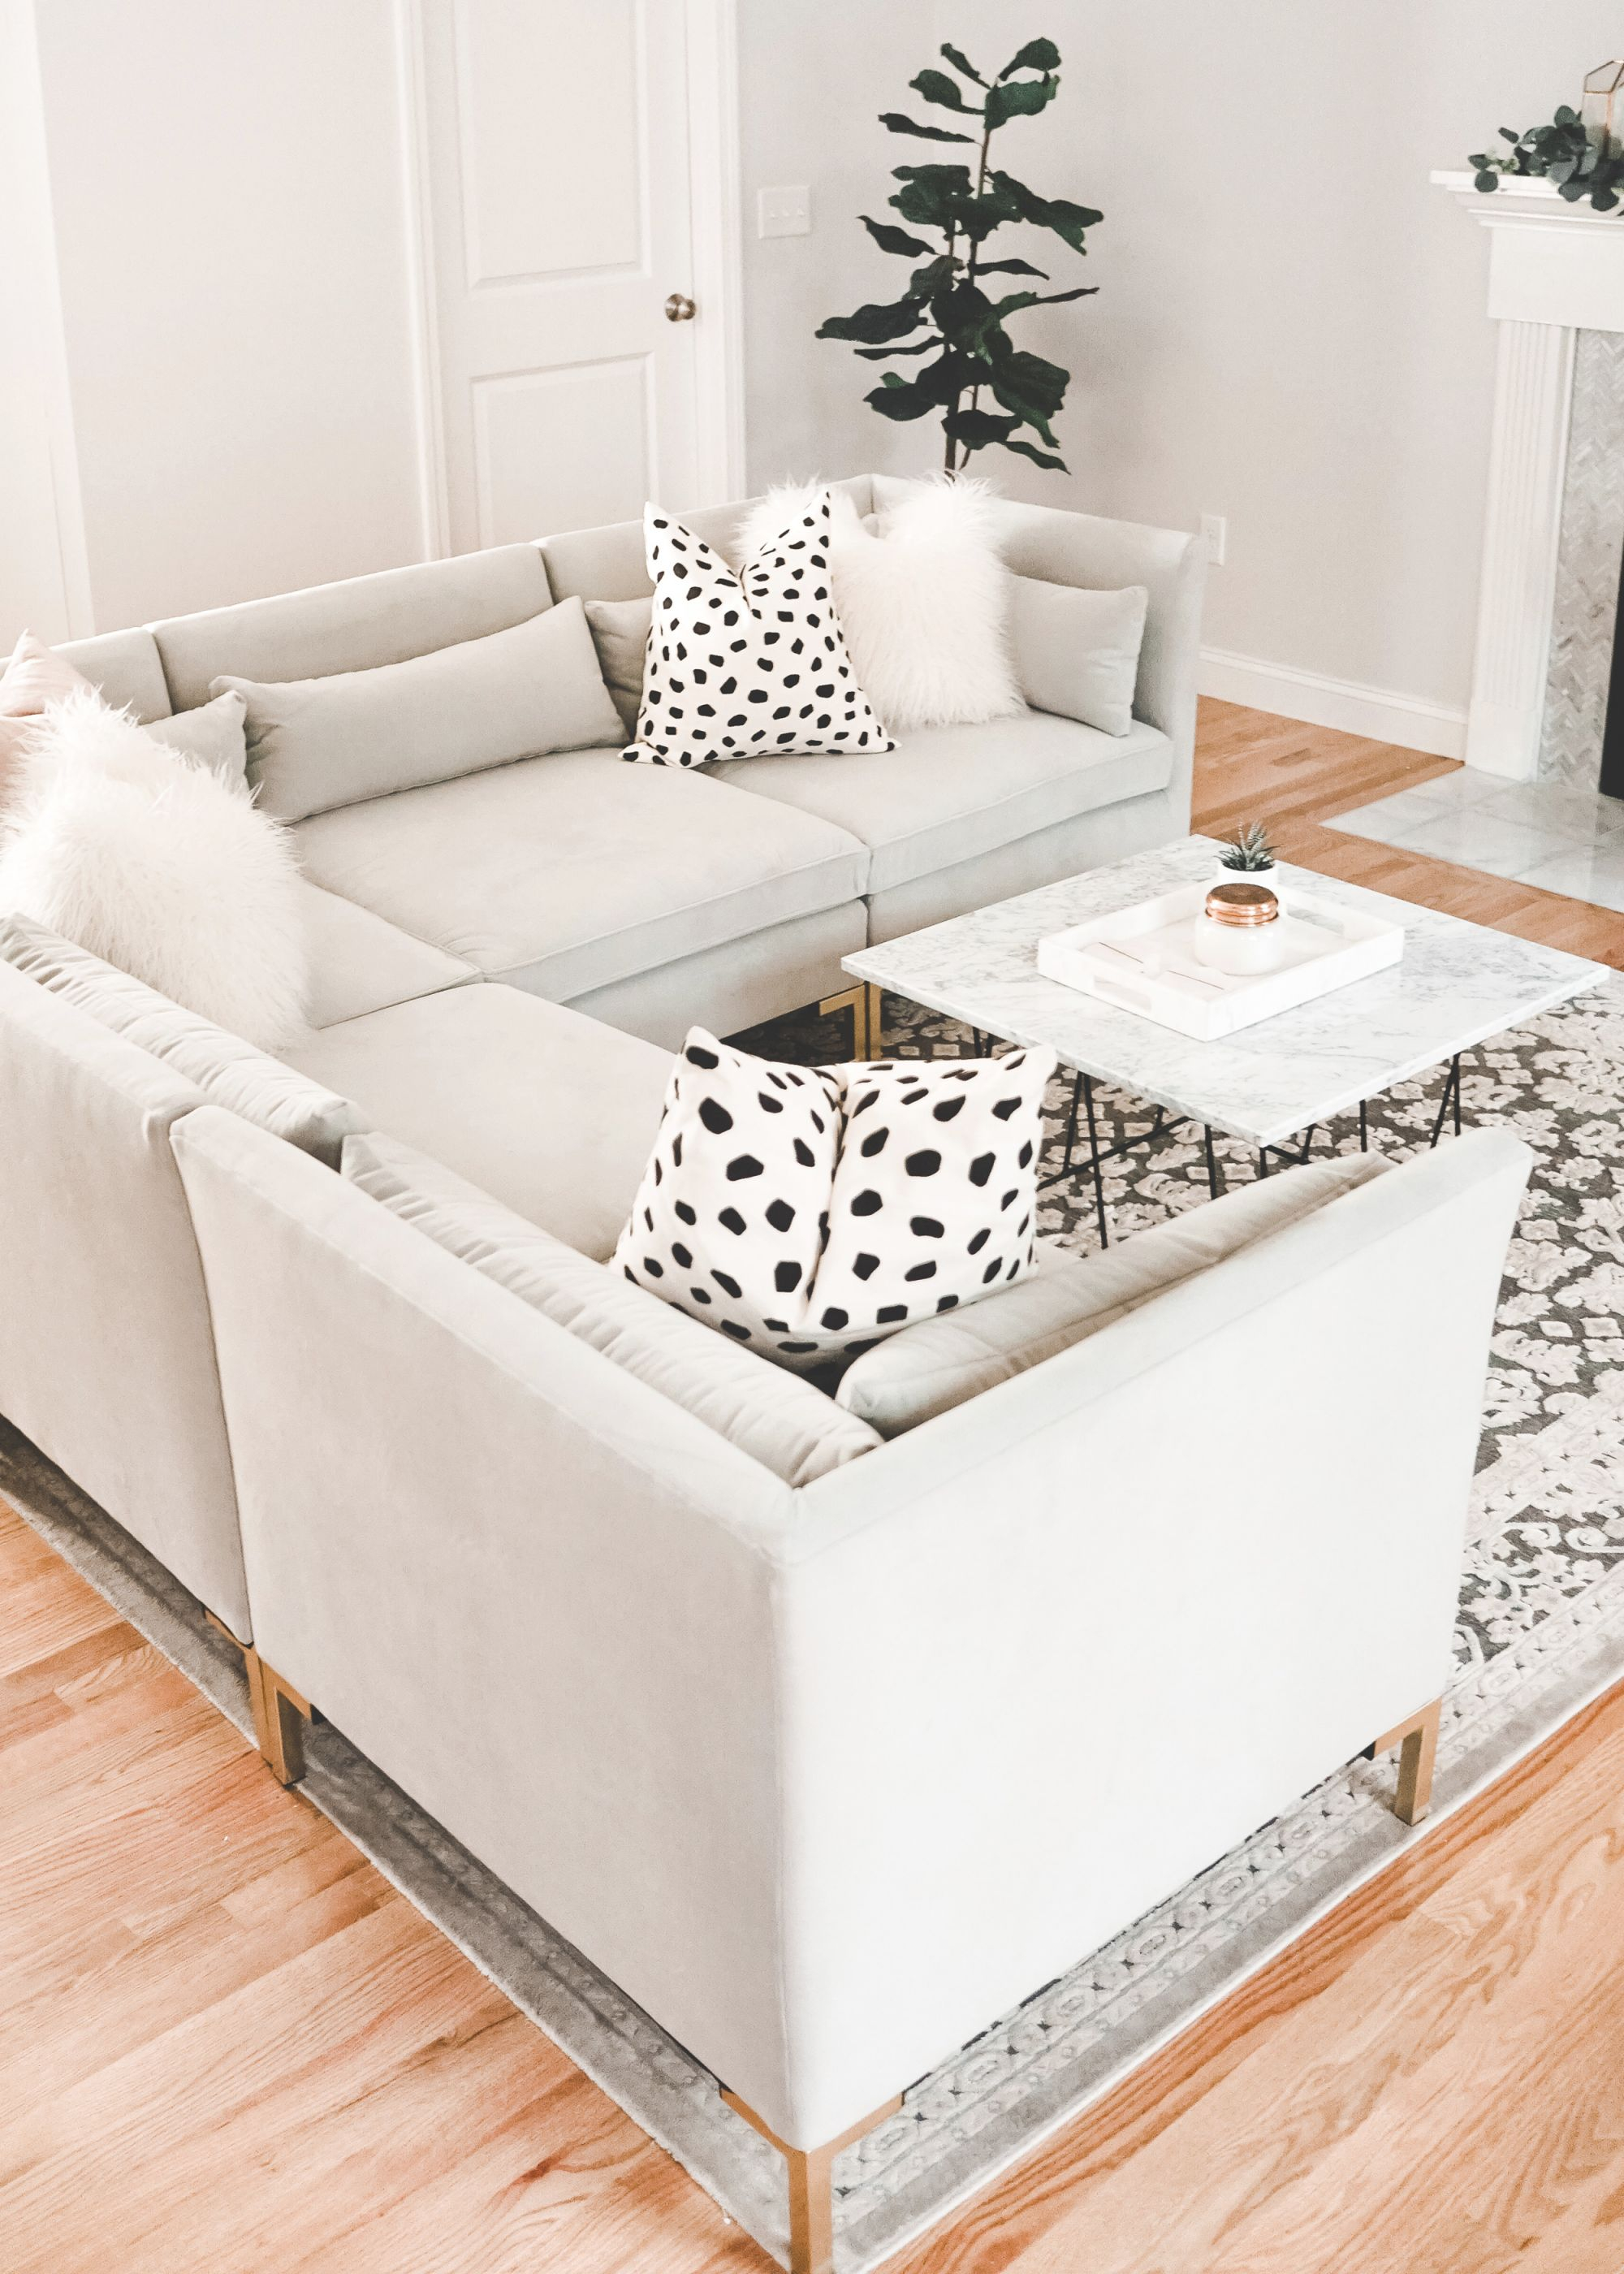 Living Room Update With Raymour & Flanigan – A Mix Of Min within Lovely Raymour And Flanigan Sectional Sofas